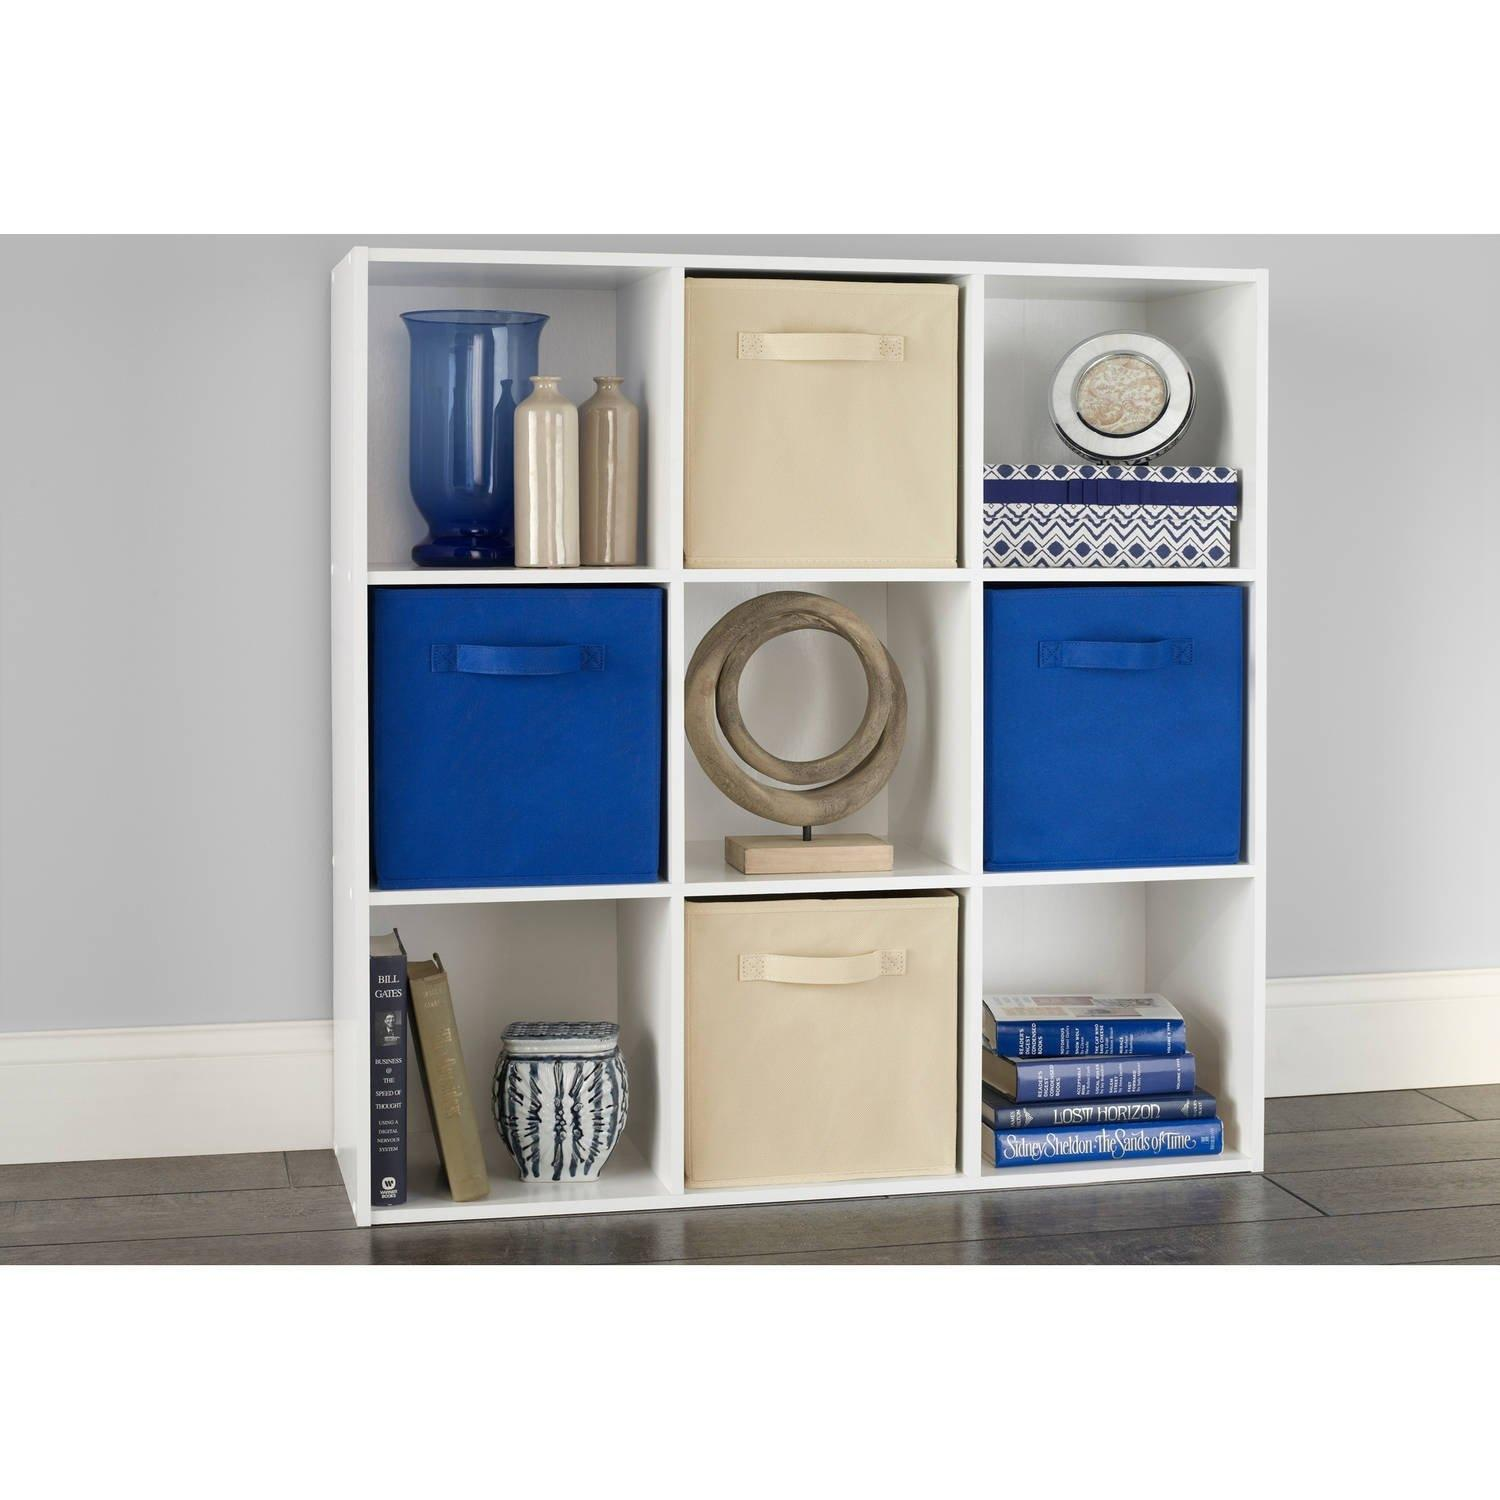 two drawers storage rod nice plus with closet system shelving also amazing closetmaid hanger organizers lowes and shelf door organizer maid organizing using selectives bedroom design cube